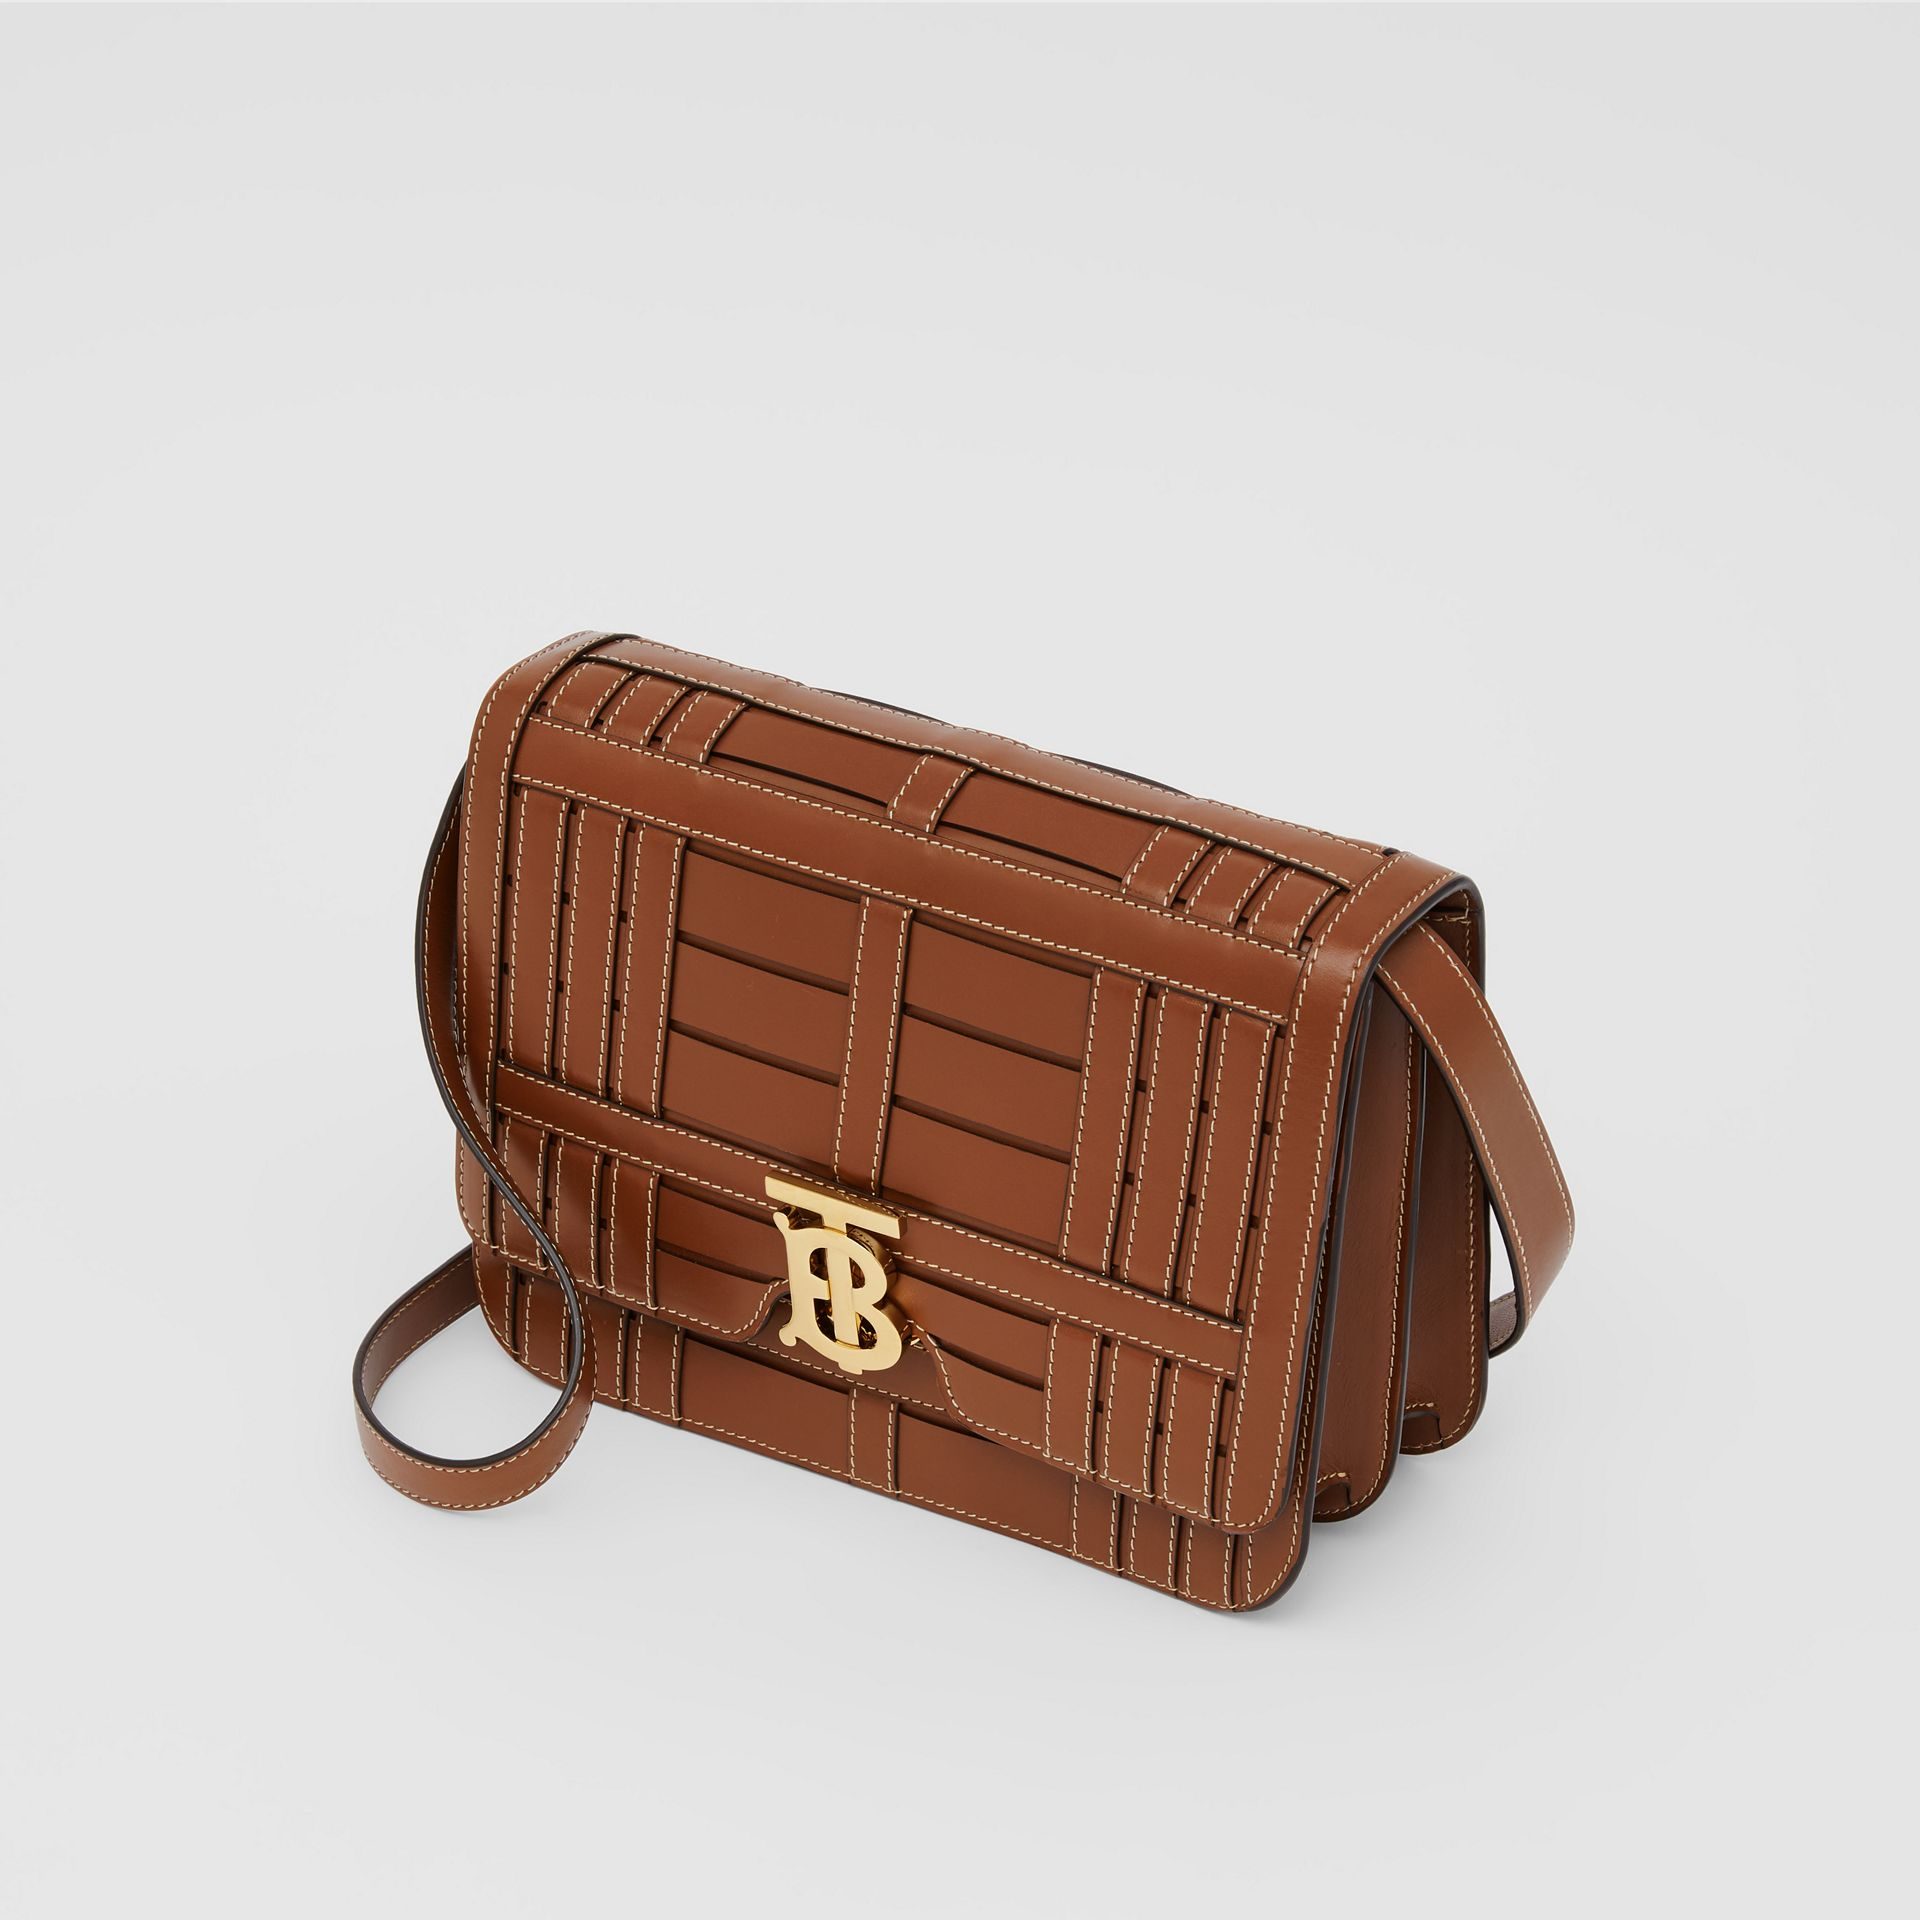 Medium Woven Leather TB Bag in Tan - Women | Burberry - gallery image 3